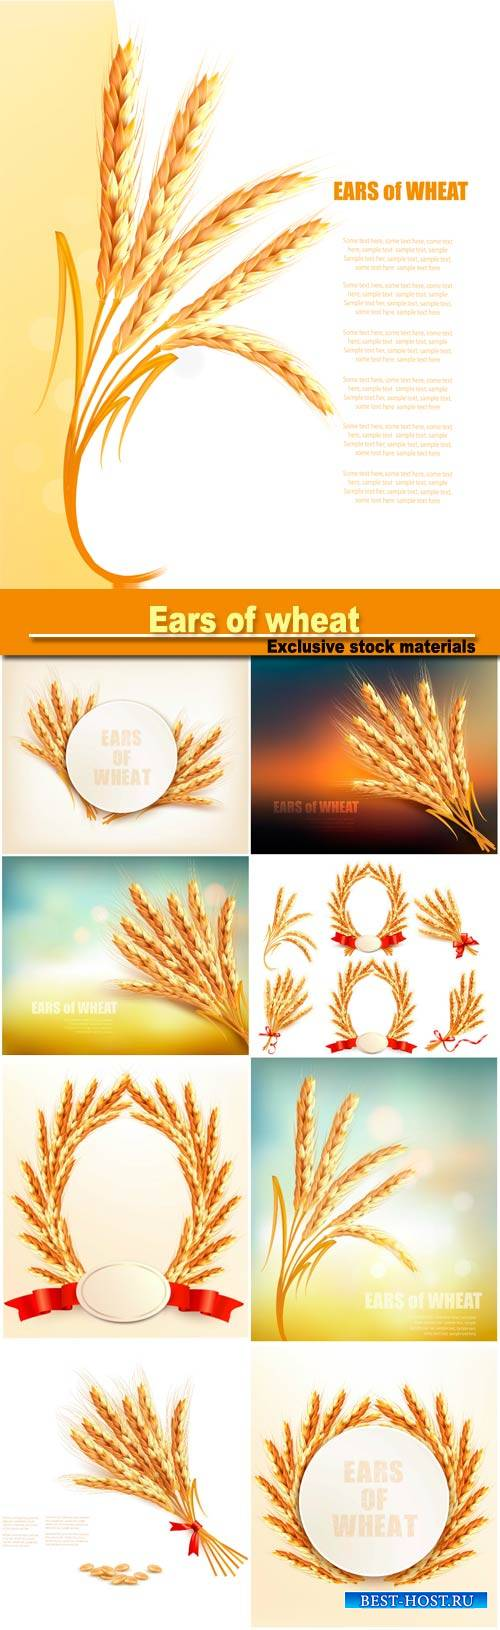 Ears of wheat, vector illustration